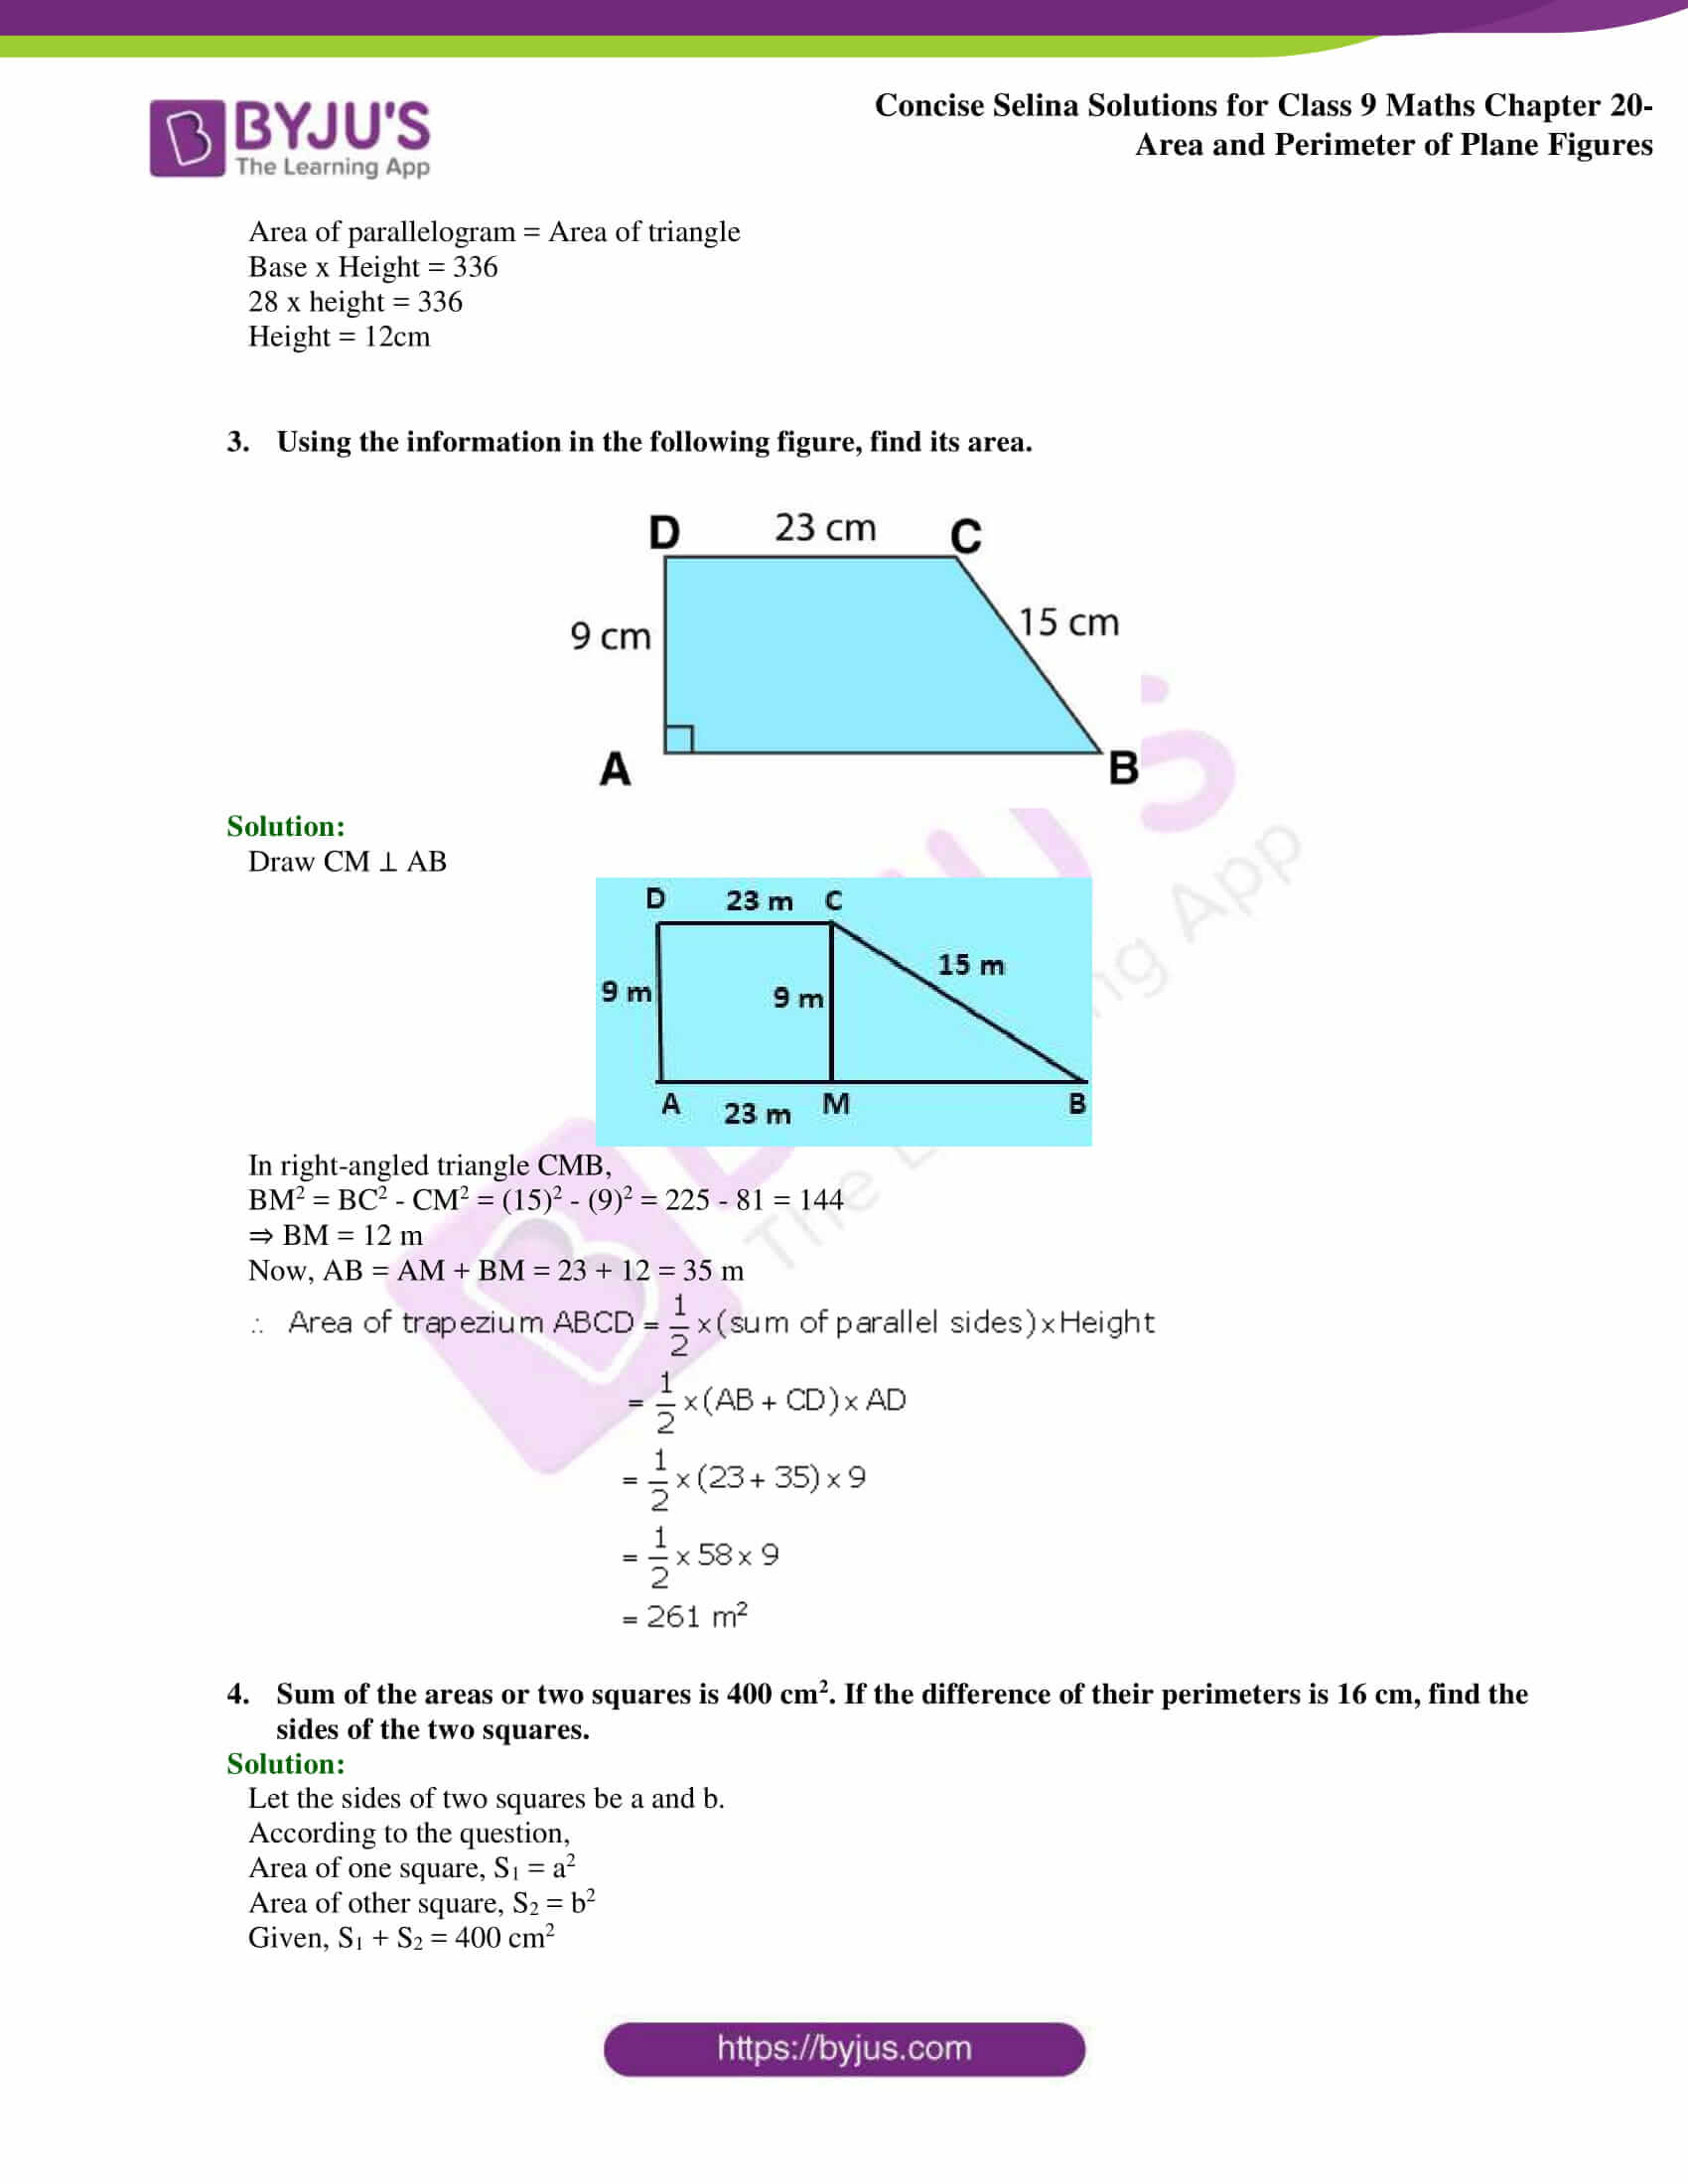 Concise Selina Solutions Class 9 Maths Chapter 20 Area and Perimeter of Plane part 46